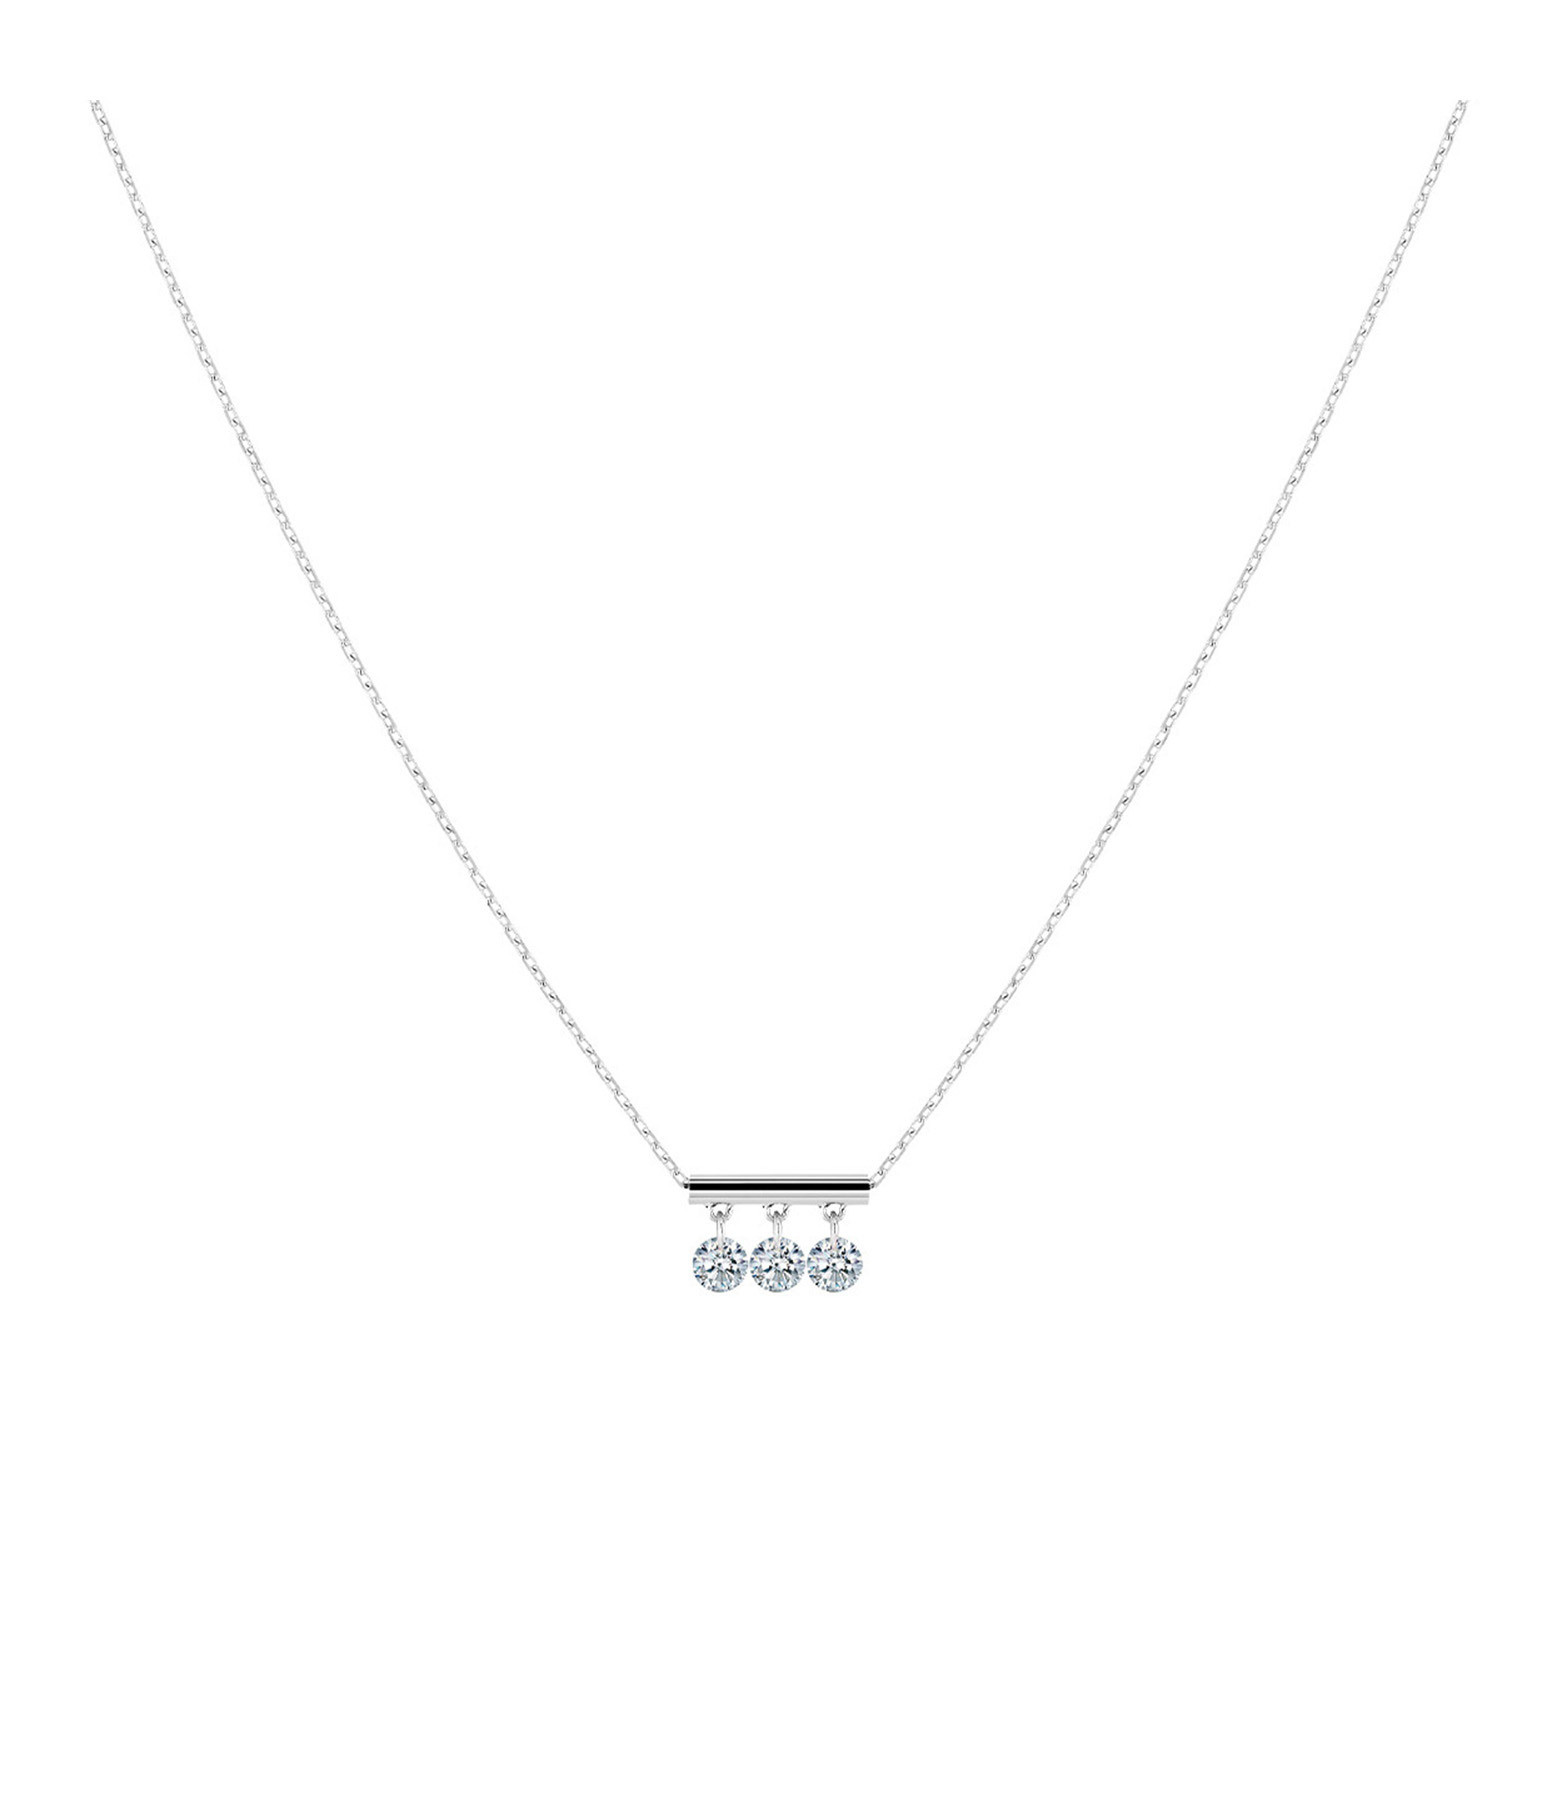 LA BRUNE & LA BLONDE - Collier Pampilles 3 Diamants Brillants Or Blanc